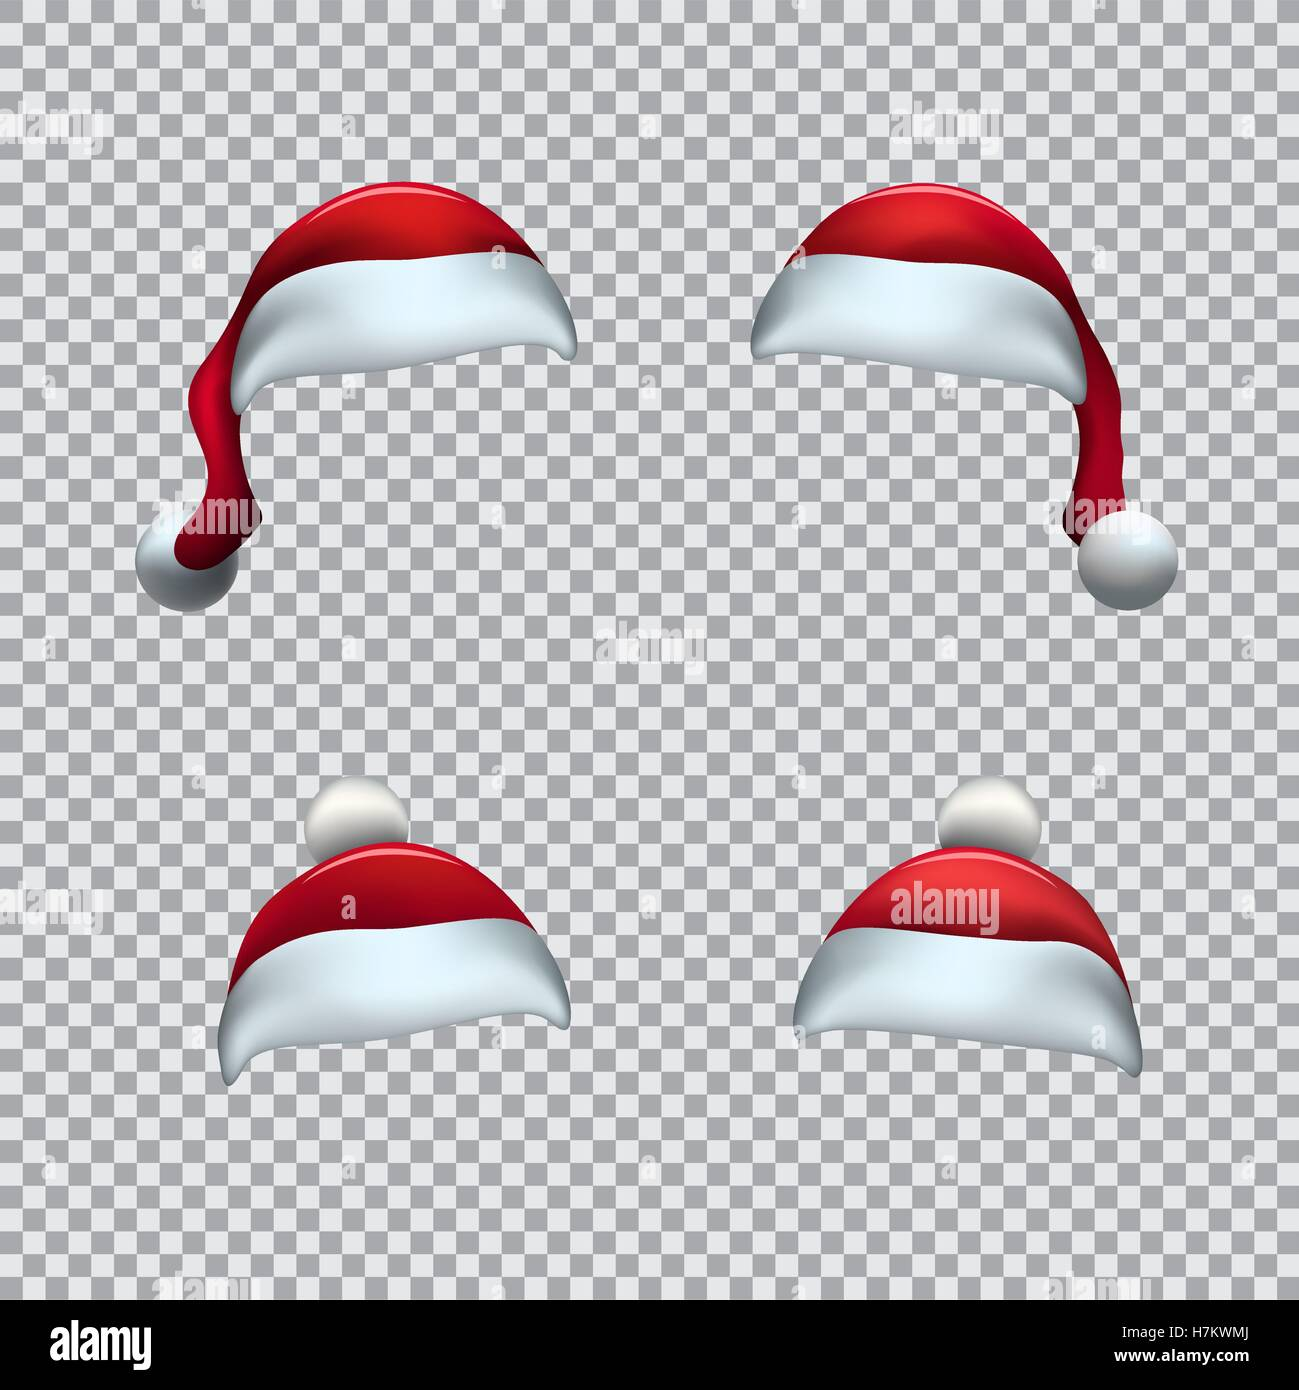 Hat Template Stock Photos & Hat Template Stock Images - Alamy